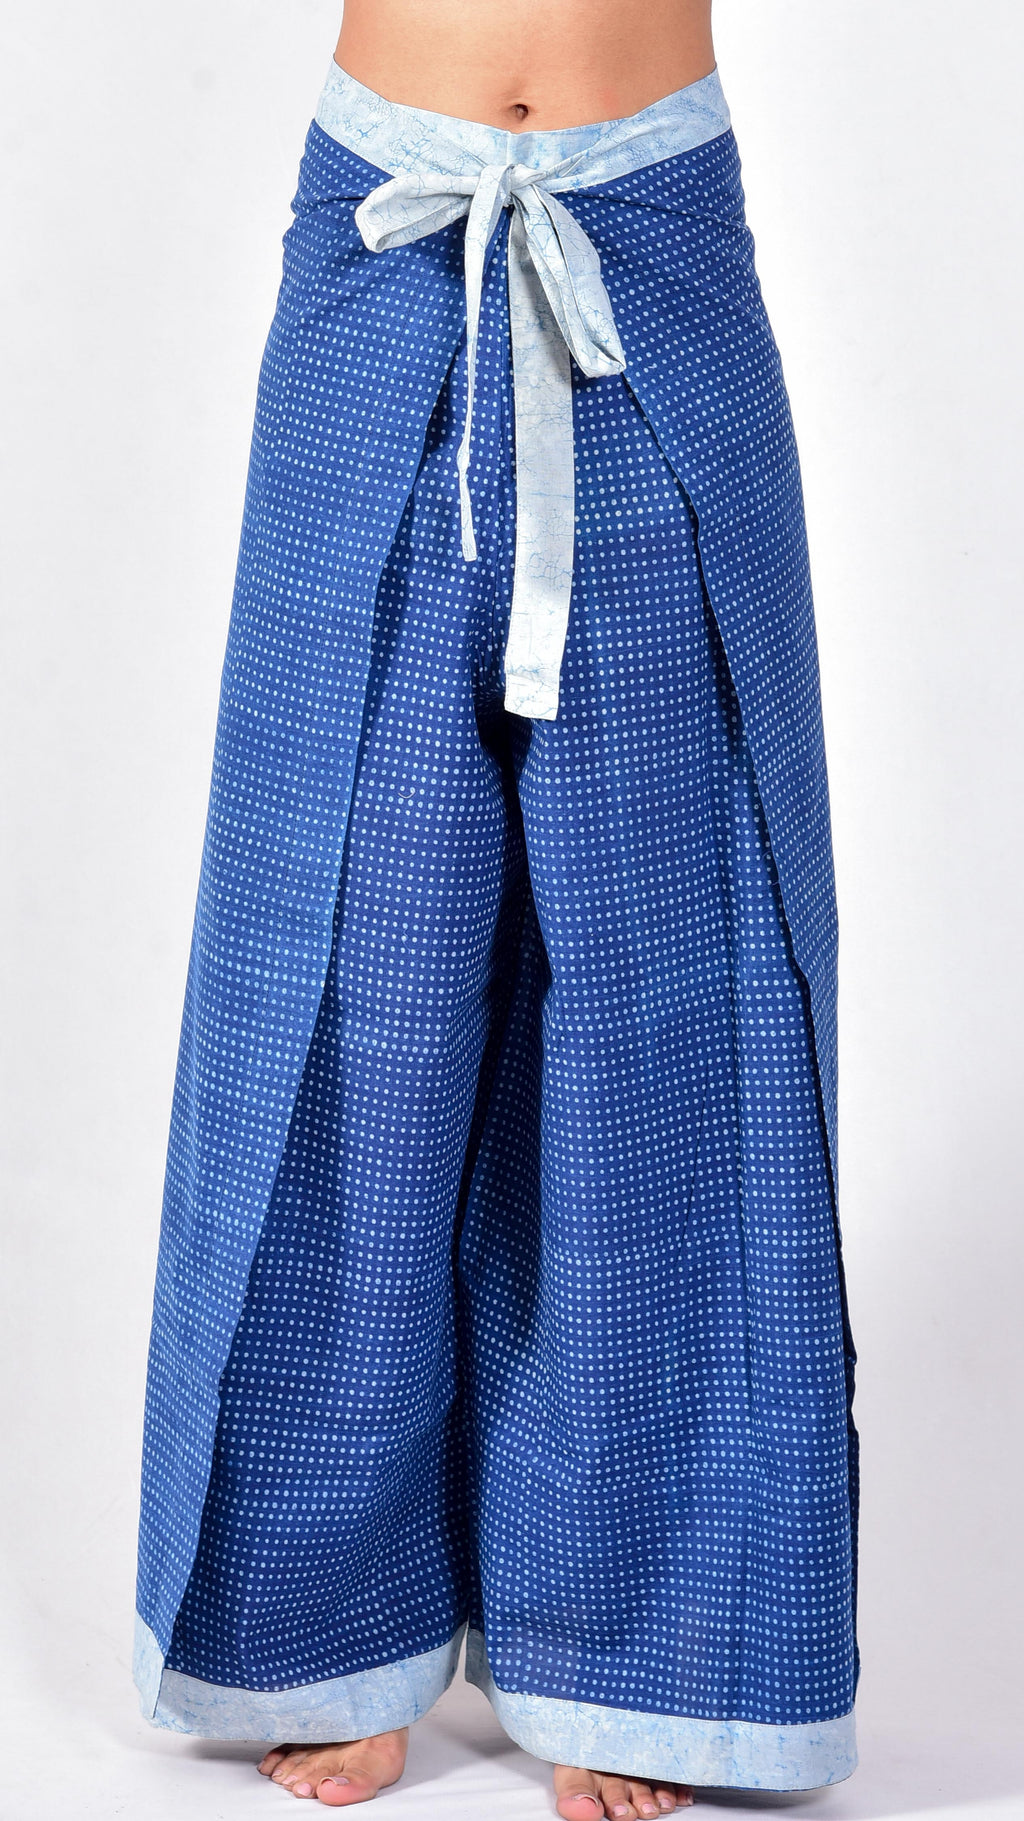 Indigo dyed and dabu hand block printed wrap around pants - Aavaran Udaipur